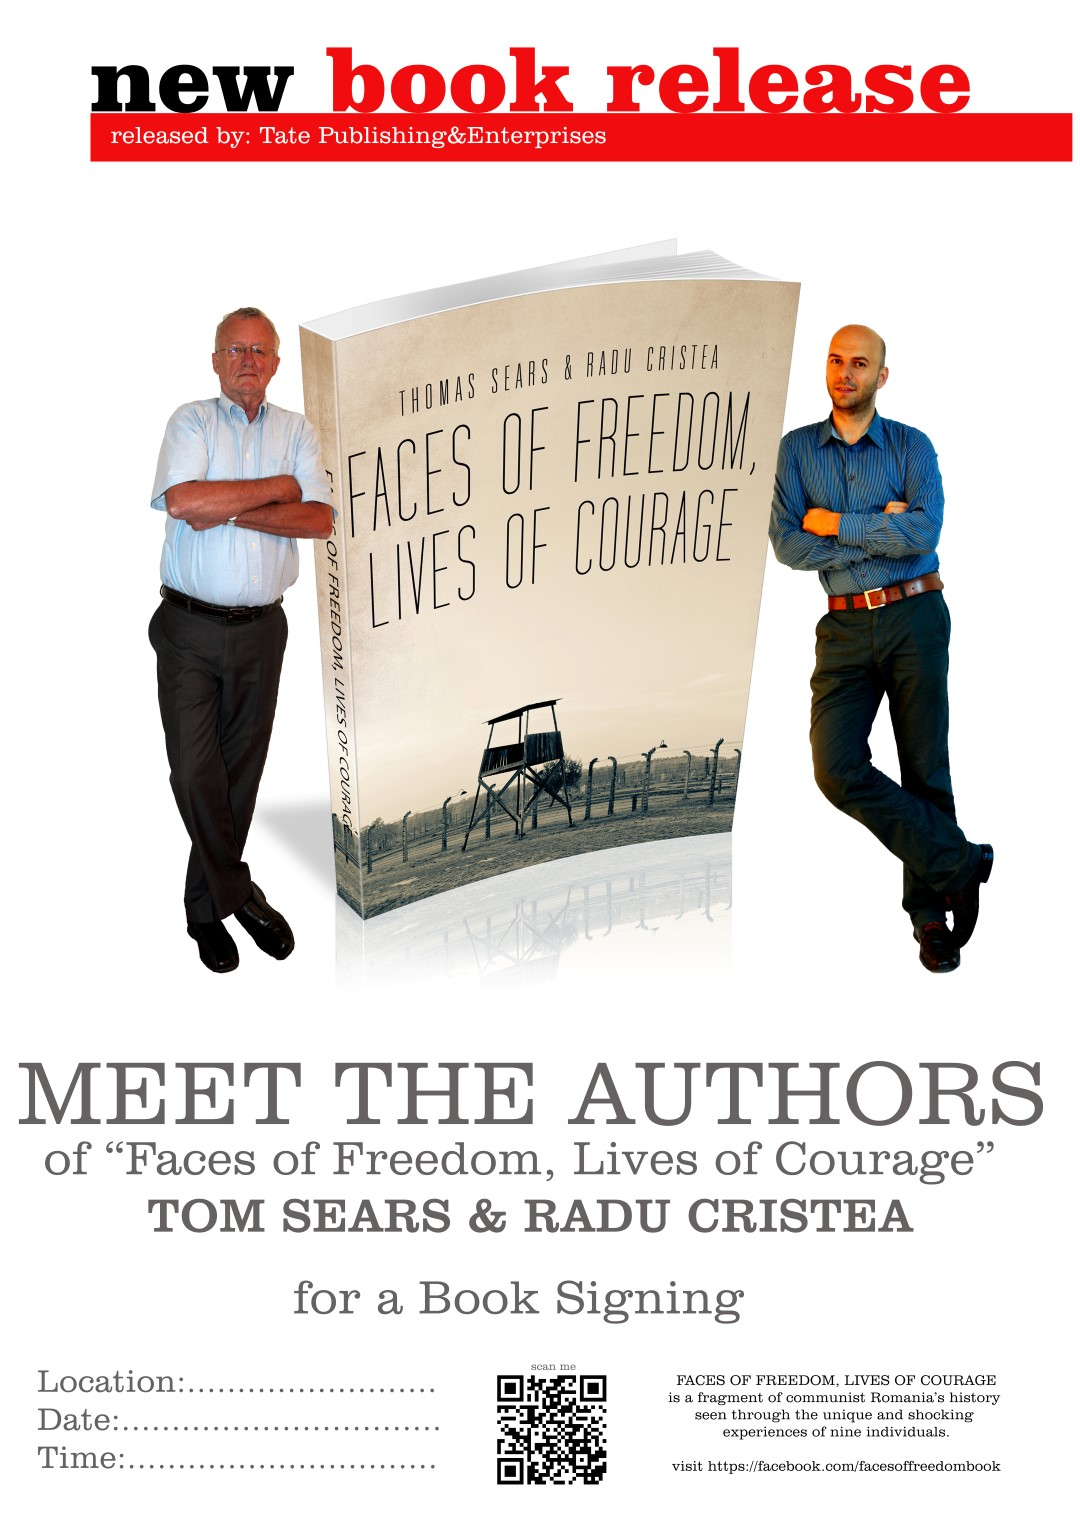 Faces_of_Freedom_Lives_of_Courage_by_Tom_Sears_and_Radu_Cristea